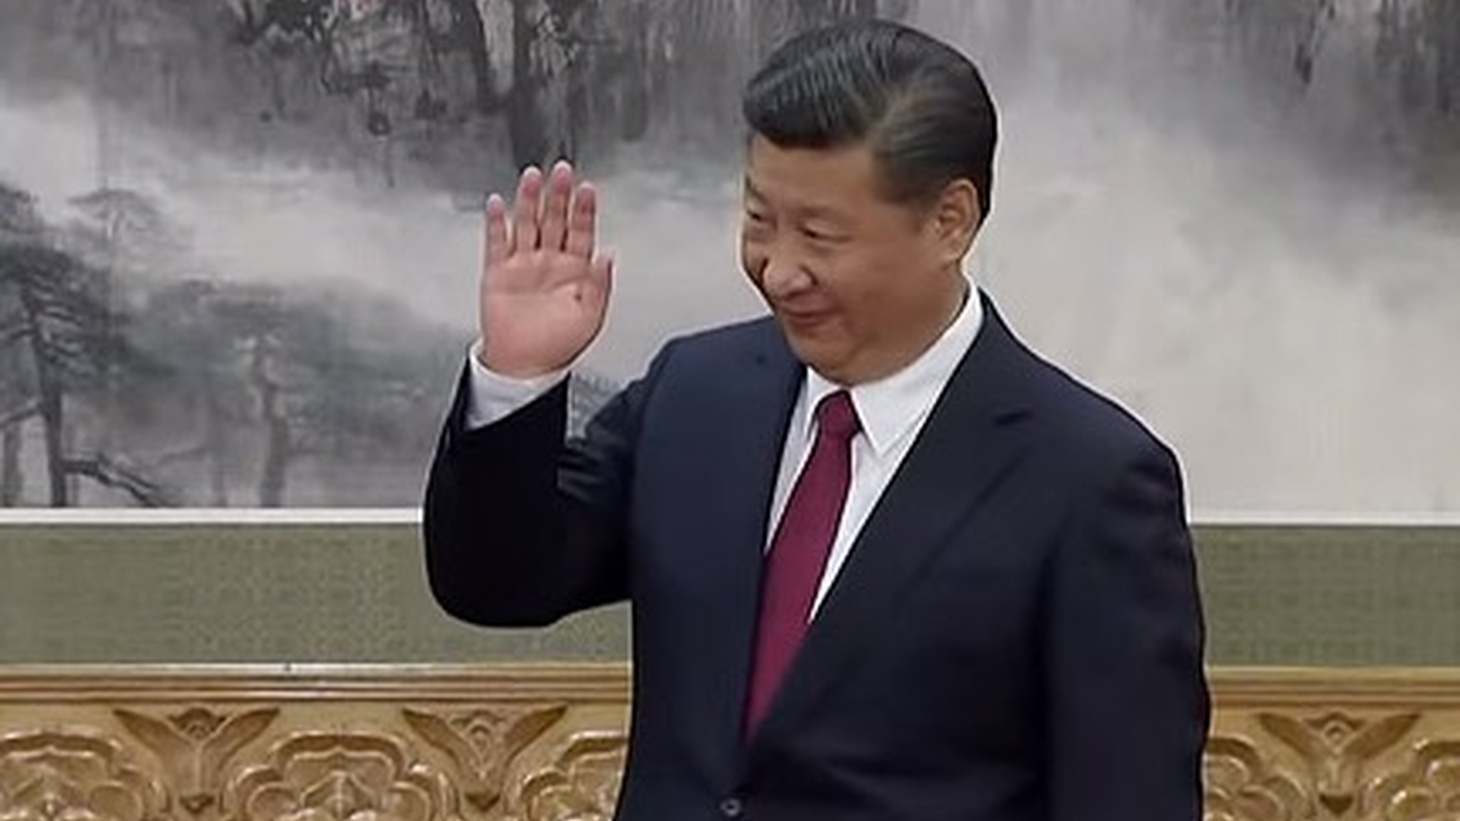 Mao Zedong, the founder of Communist China almost destroyed the country with one-man rule. After that, there was government by a consensus of leaders, until Deng Xiaoping became first among many. This week, President Xi Jinping was elevated to similar status -- with his name in the Constitution like Mao's and Deng's.